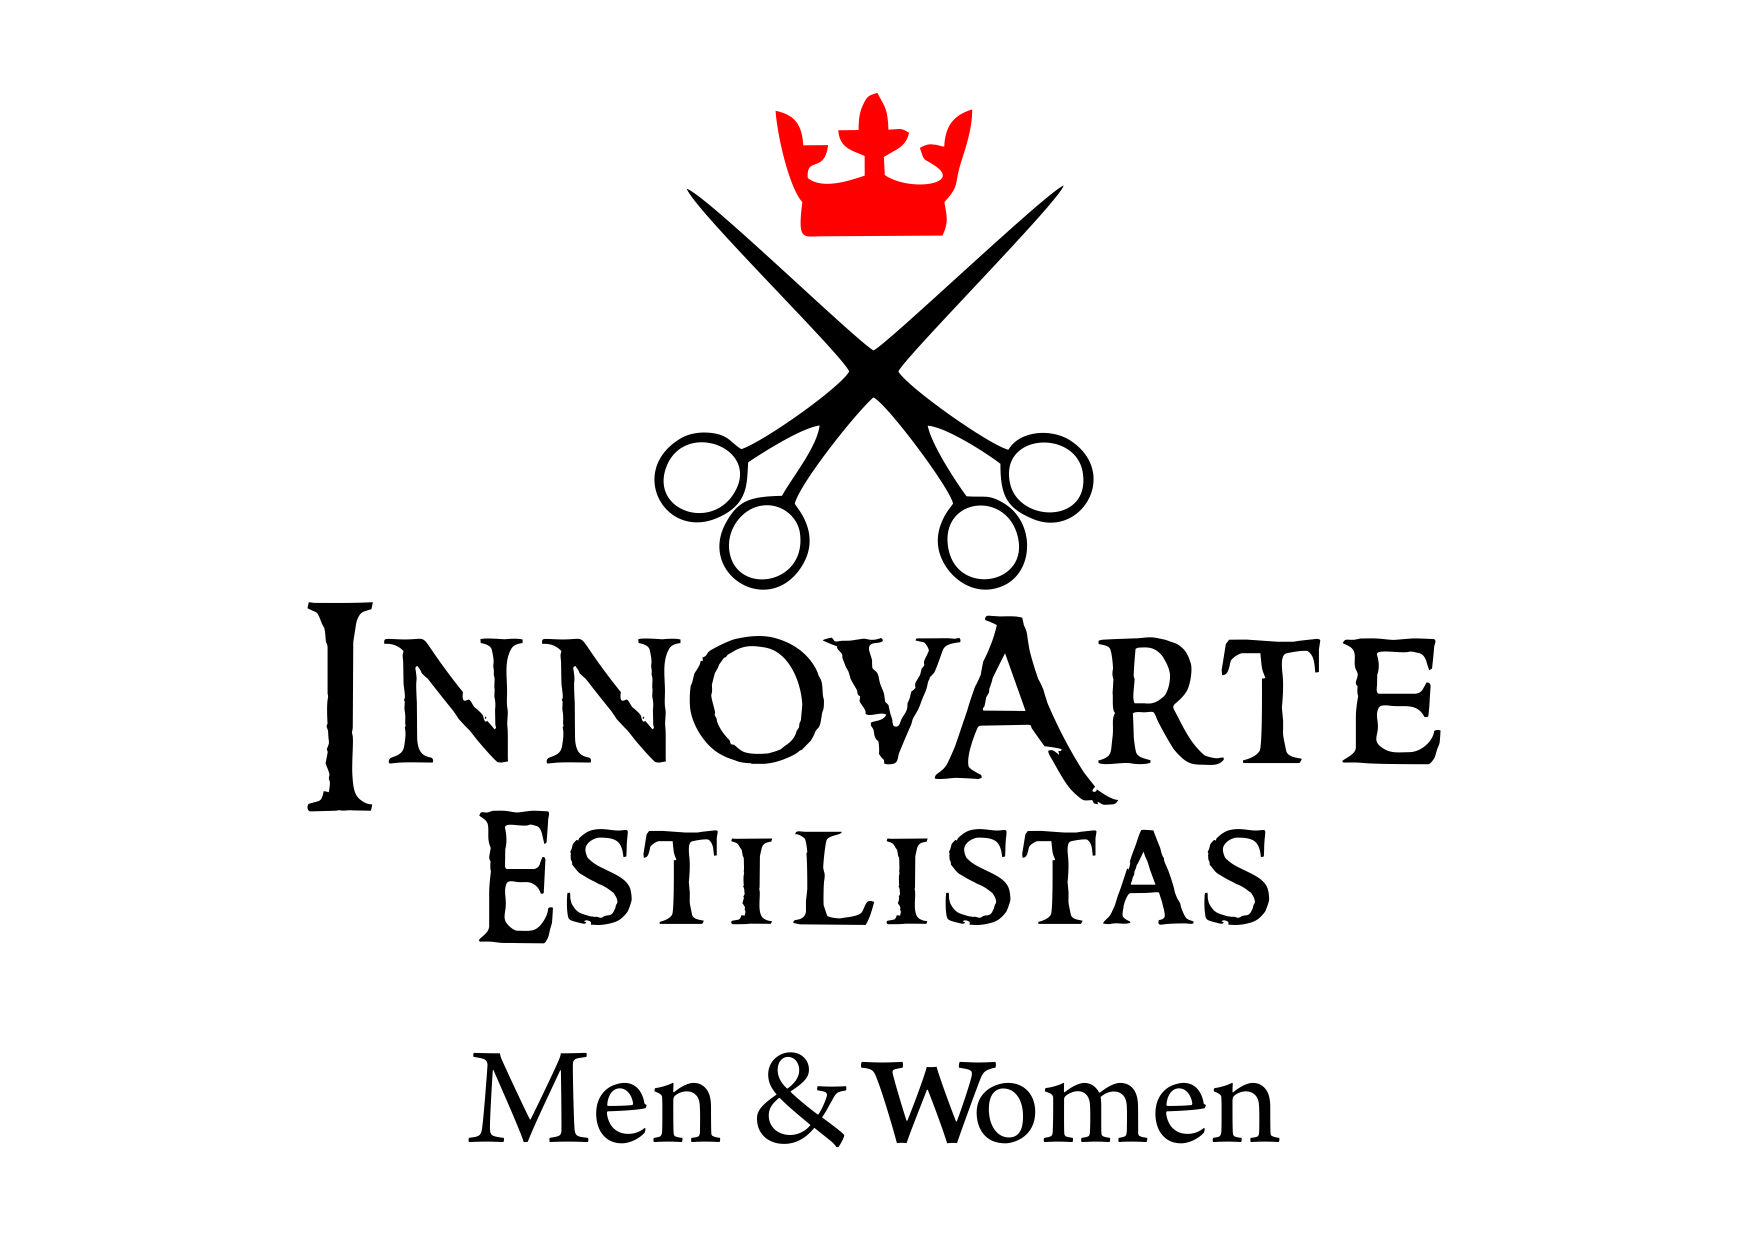 InnovArte Estilistas Men & Women